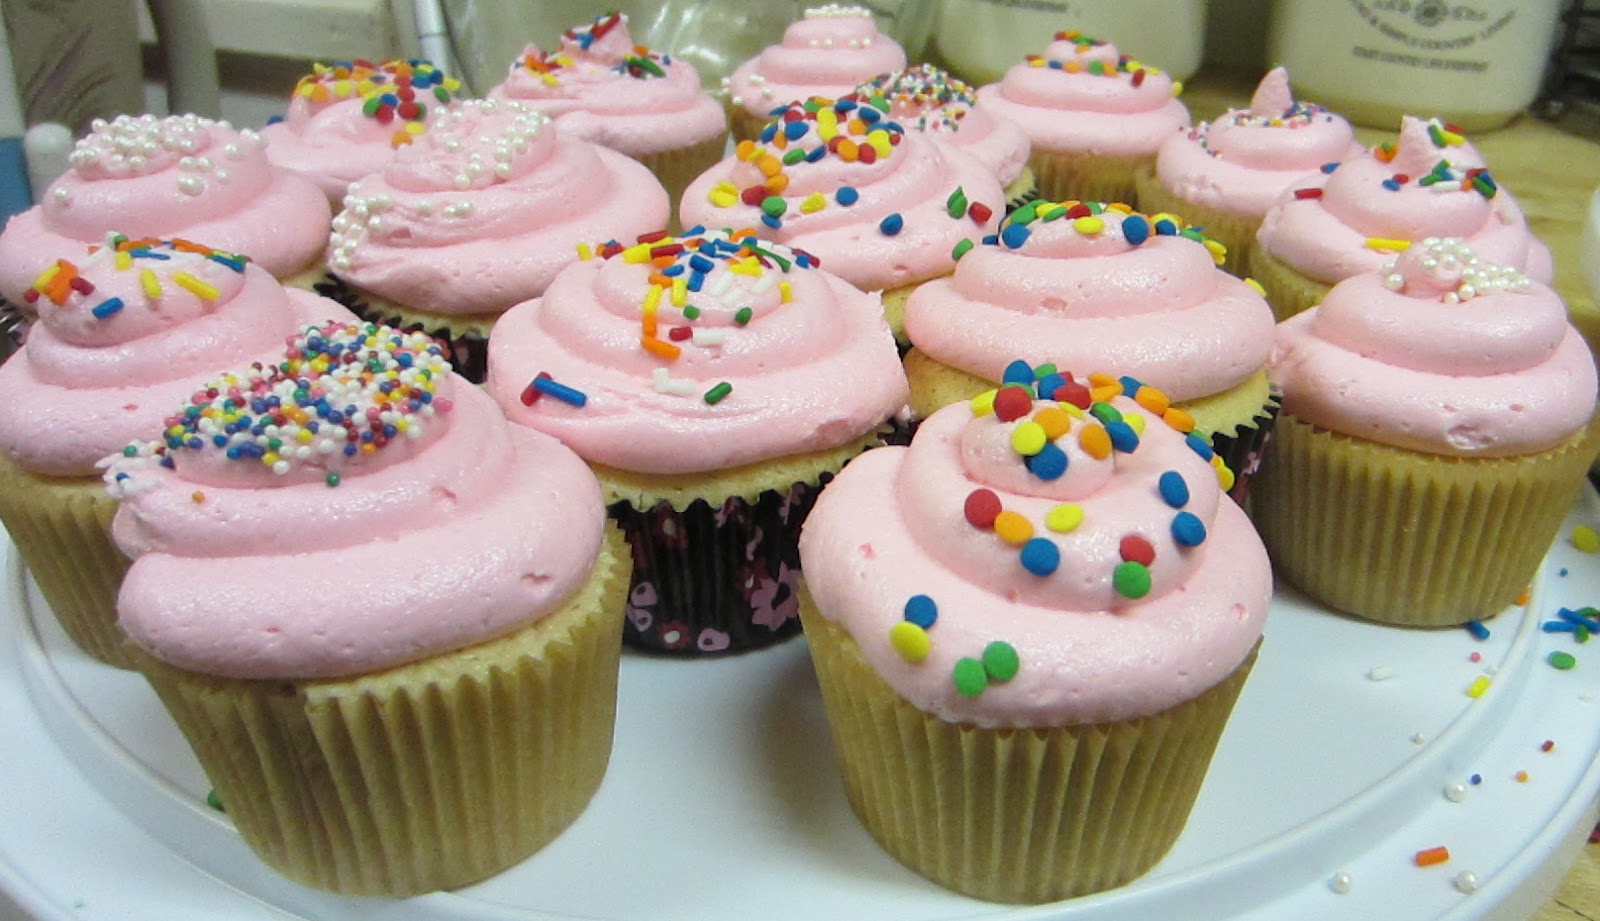 How To Make Bakery Style Cupcakes